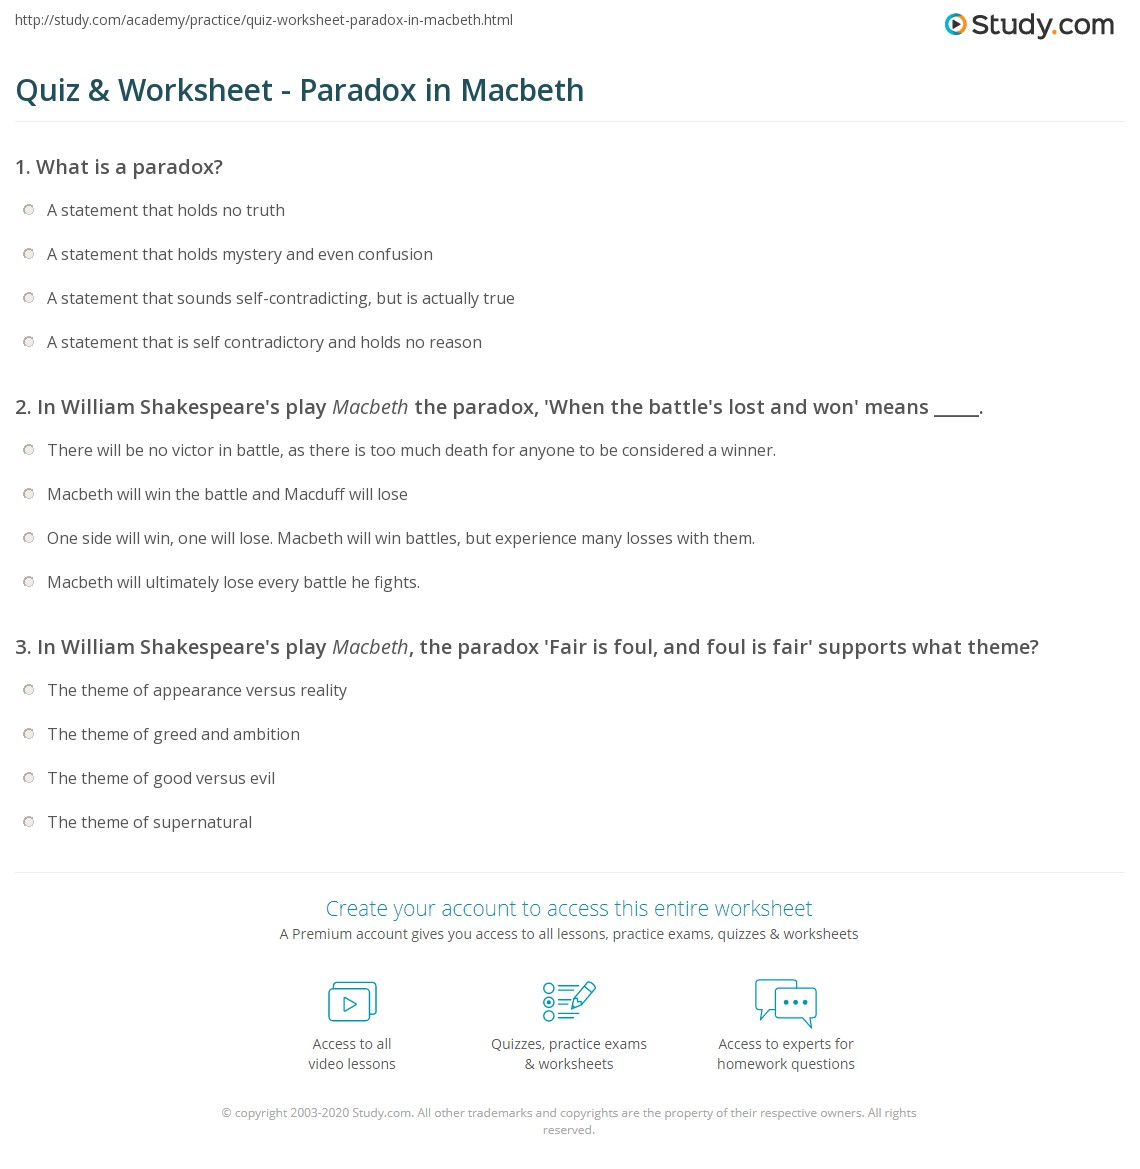 what is an example of a paradox in macbeth